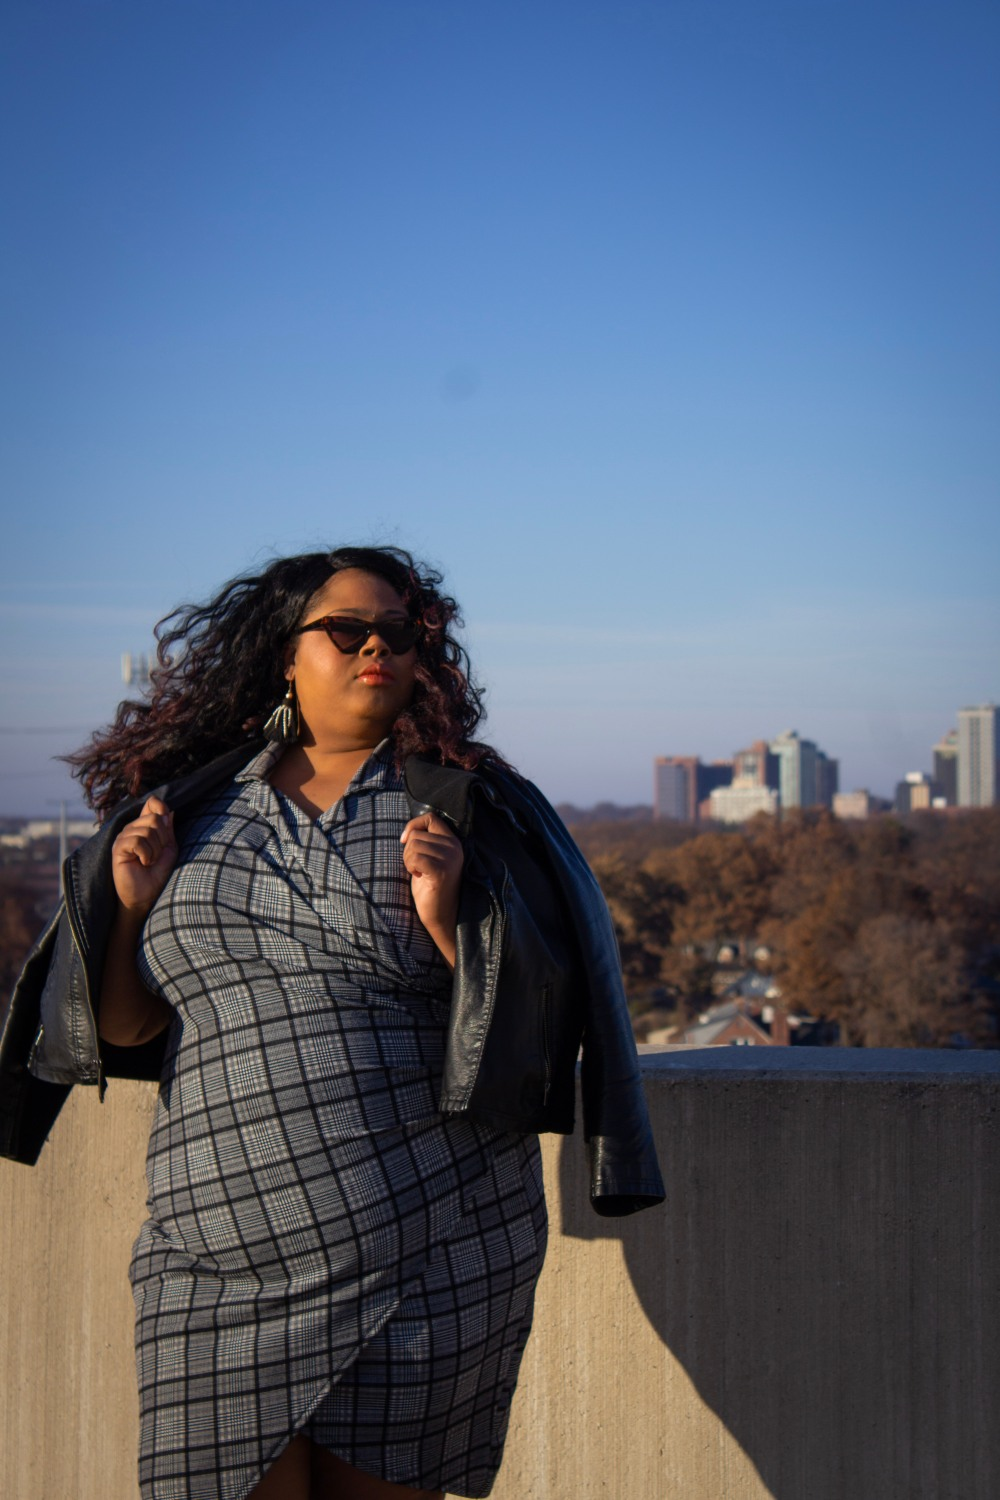 Woman in plaid on rooftop http://finessecurves.com